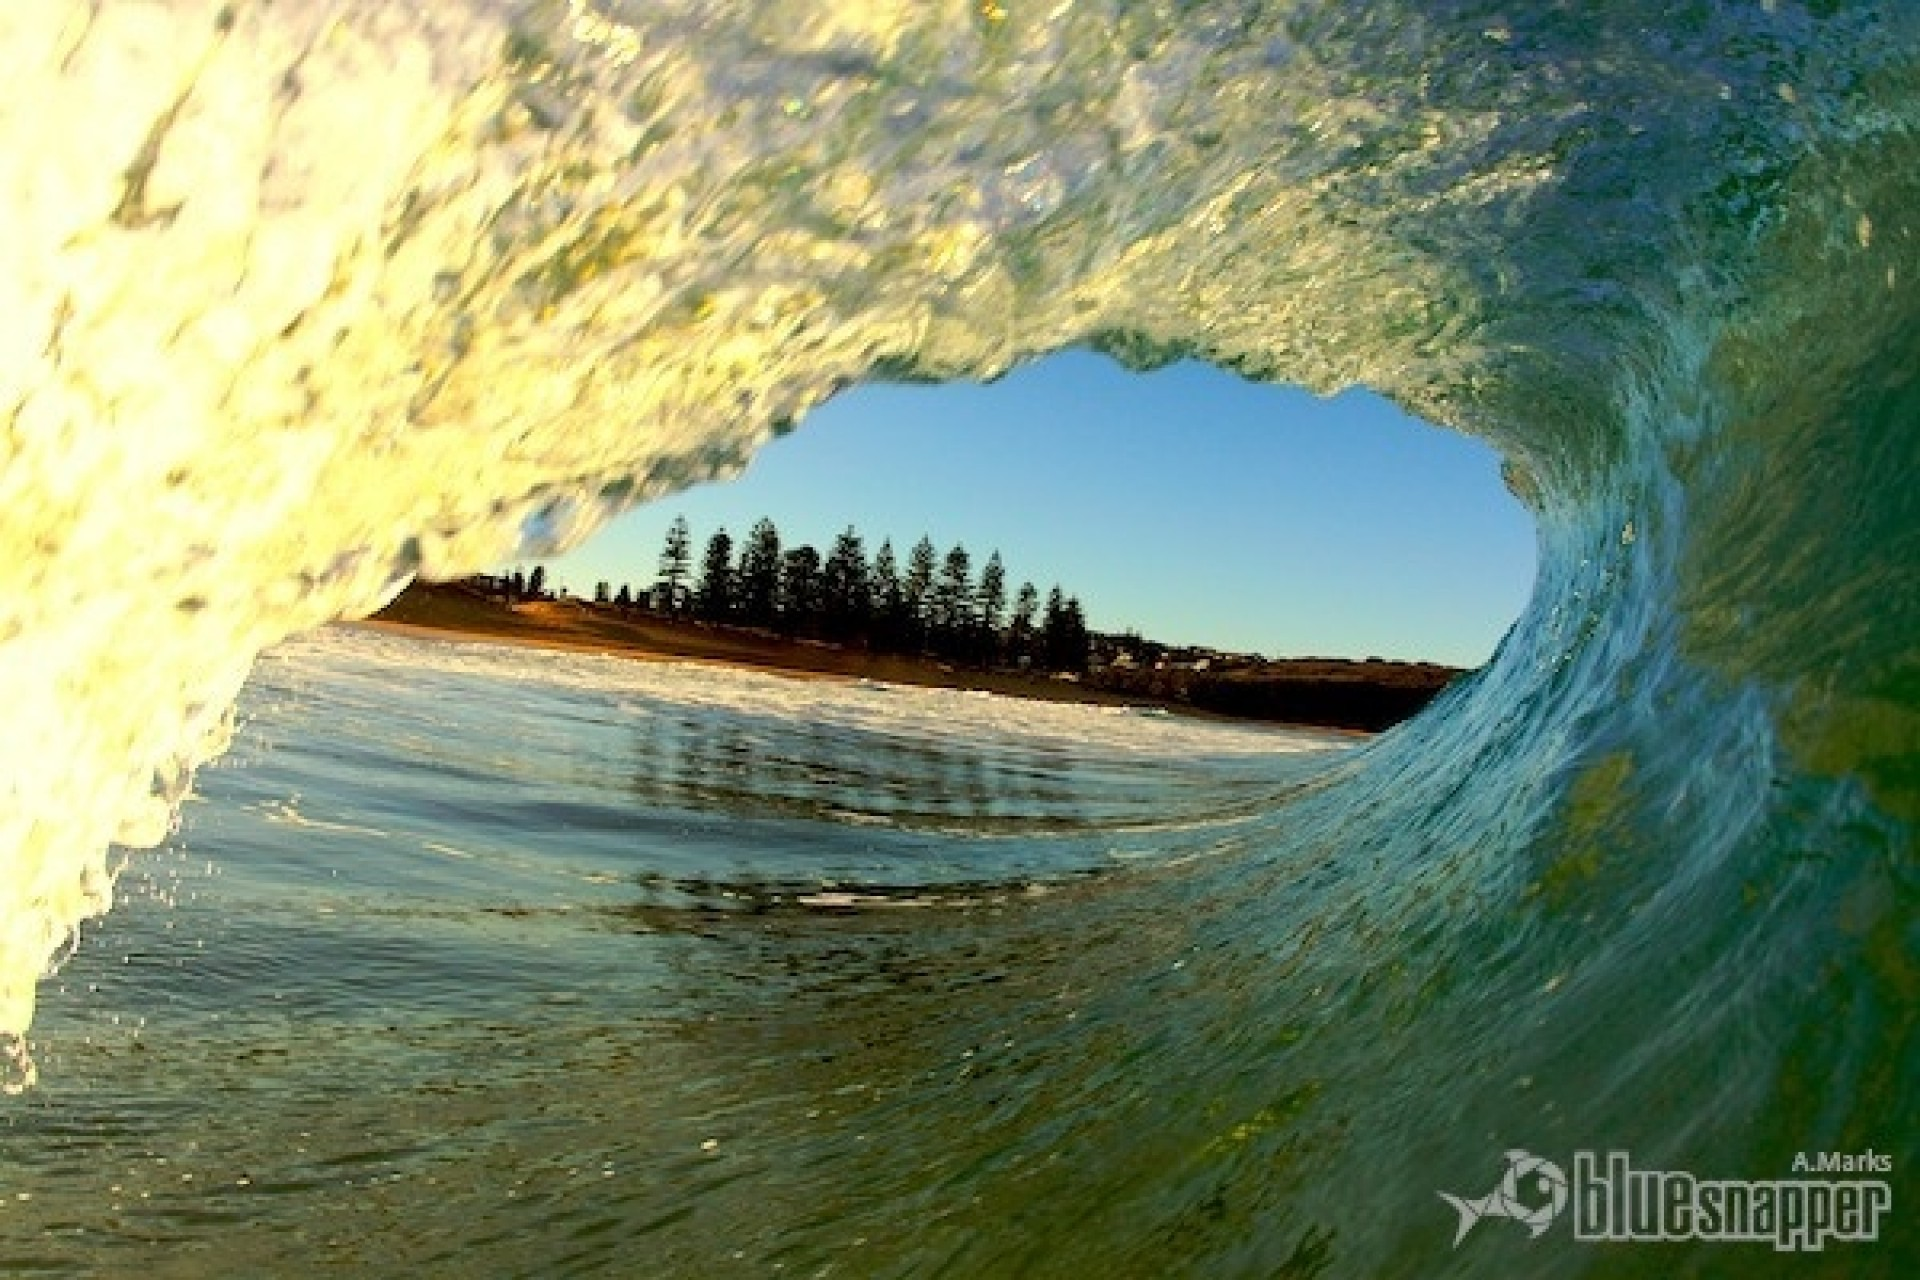 bluesnapper.com.au's photo of North Narrabeen